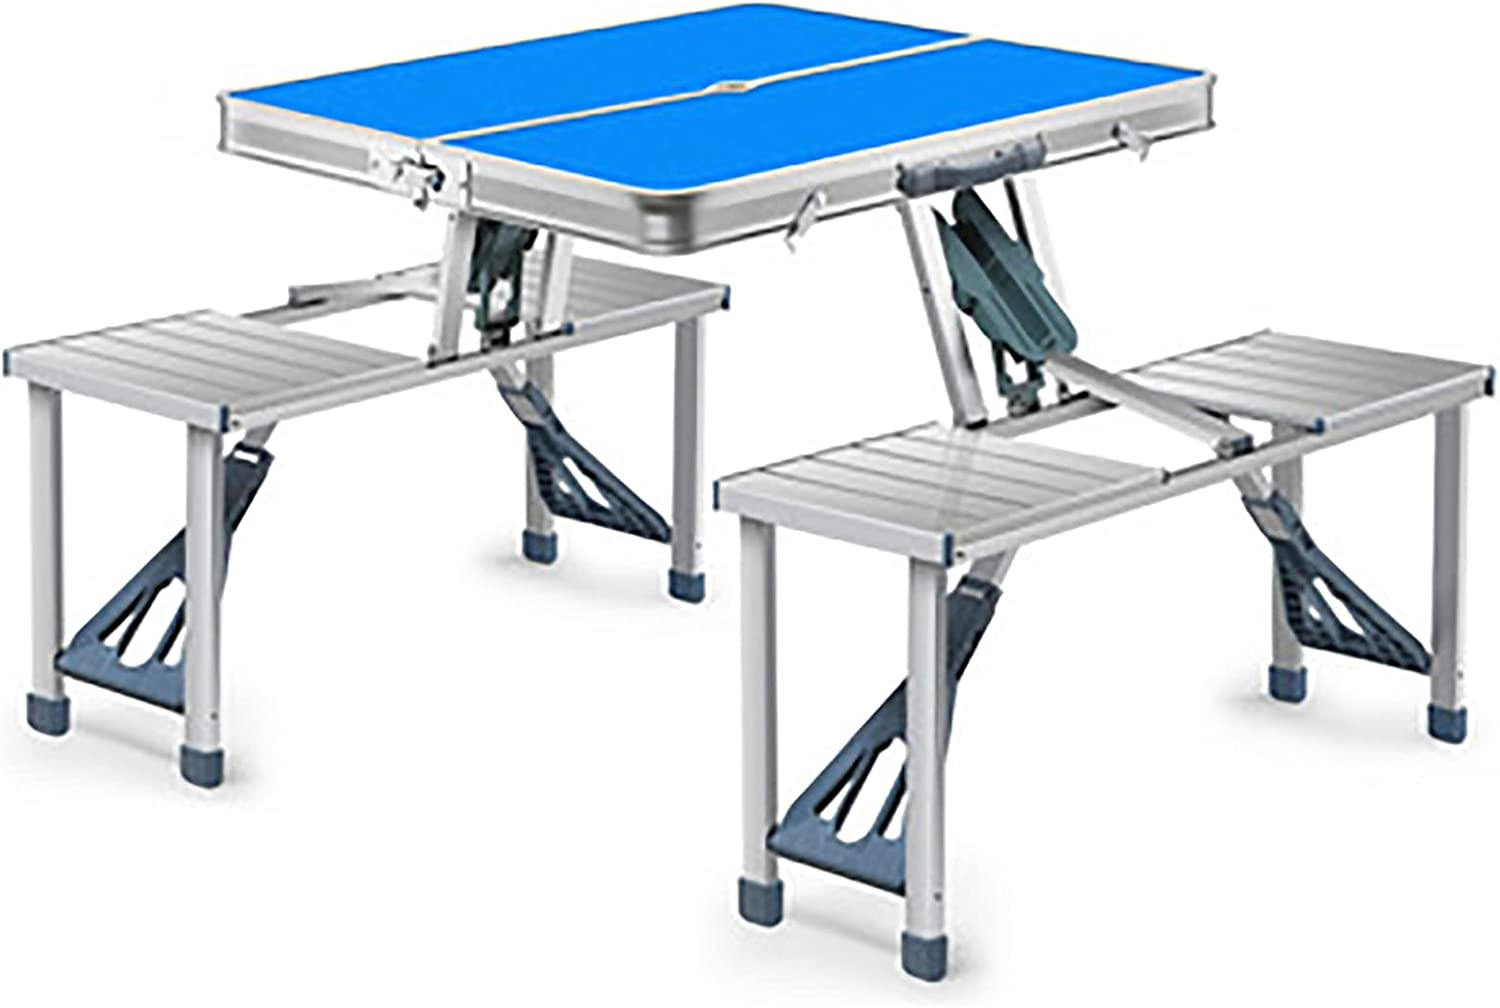 Aluminum Table Portable Picnic outlet with Campi 4 Folding Chairs NEW before selling